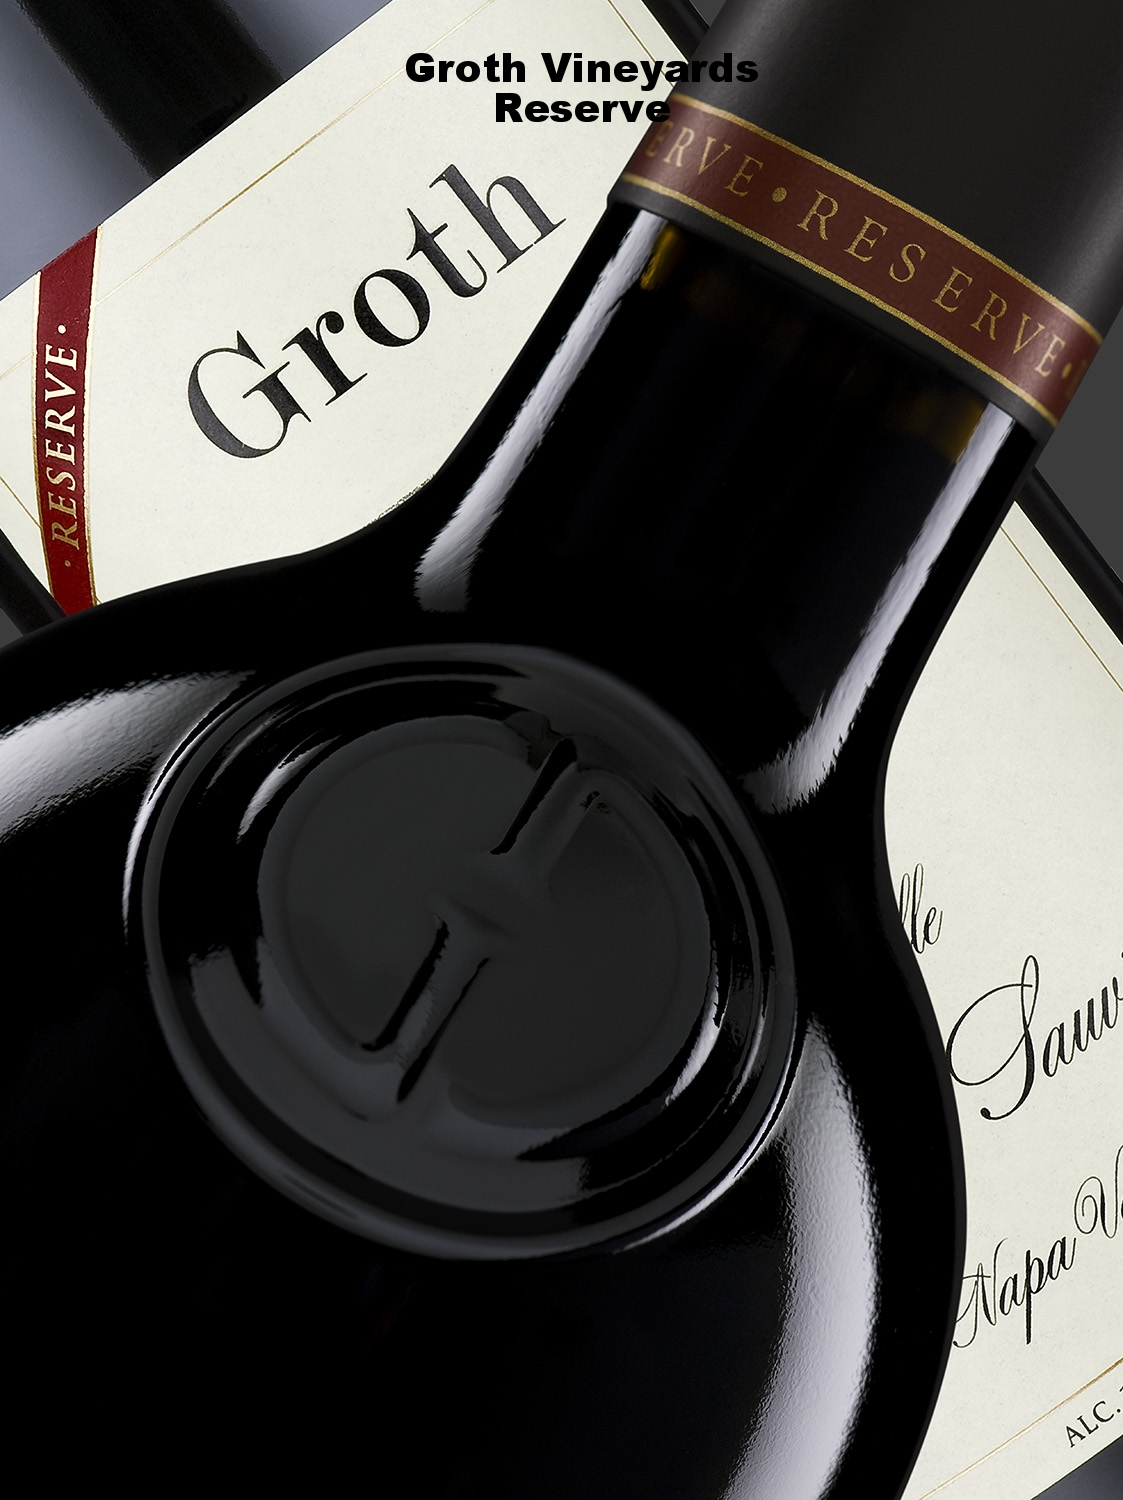 Groth Vineyards Reserve Cabernet Sauvignon